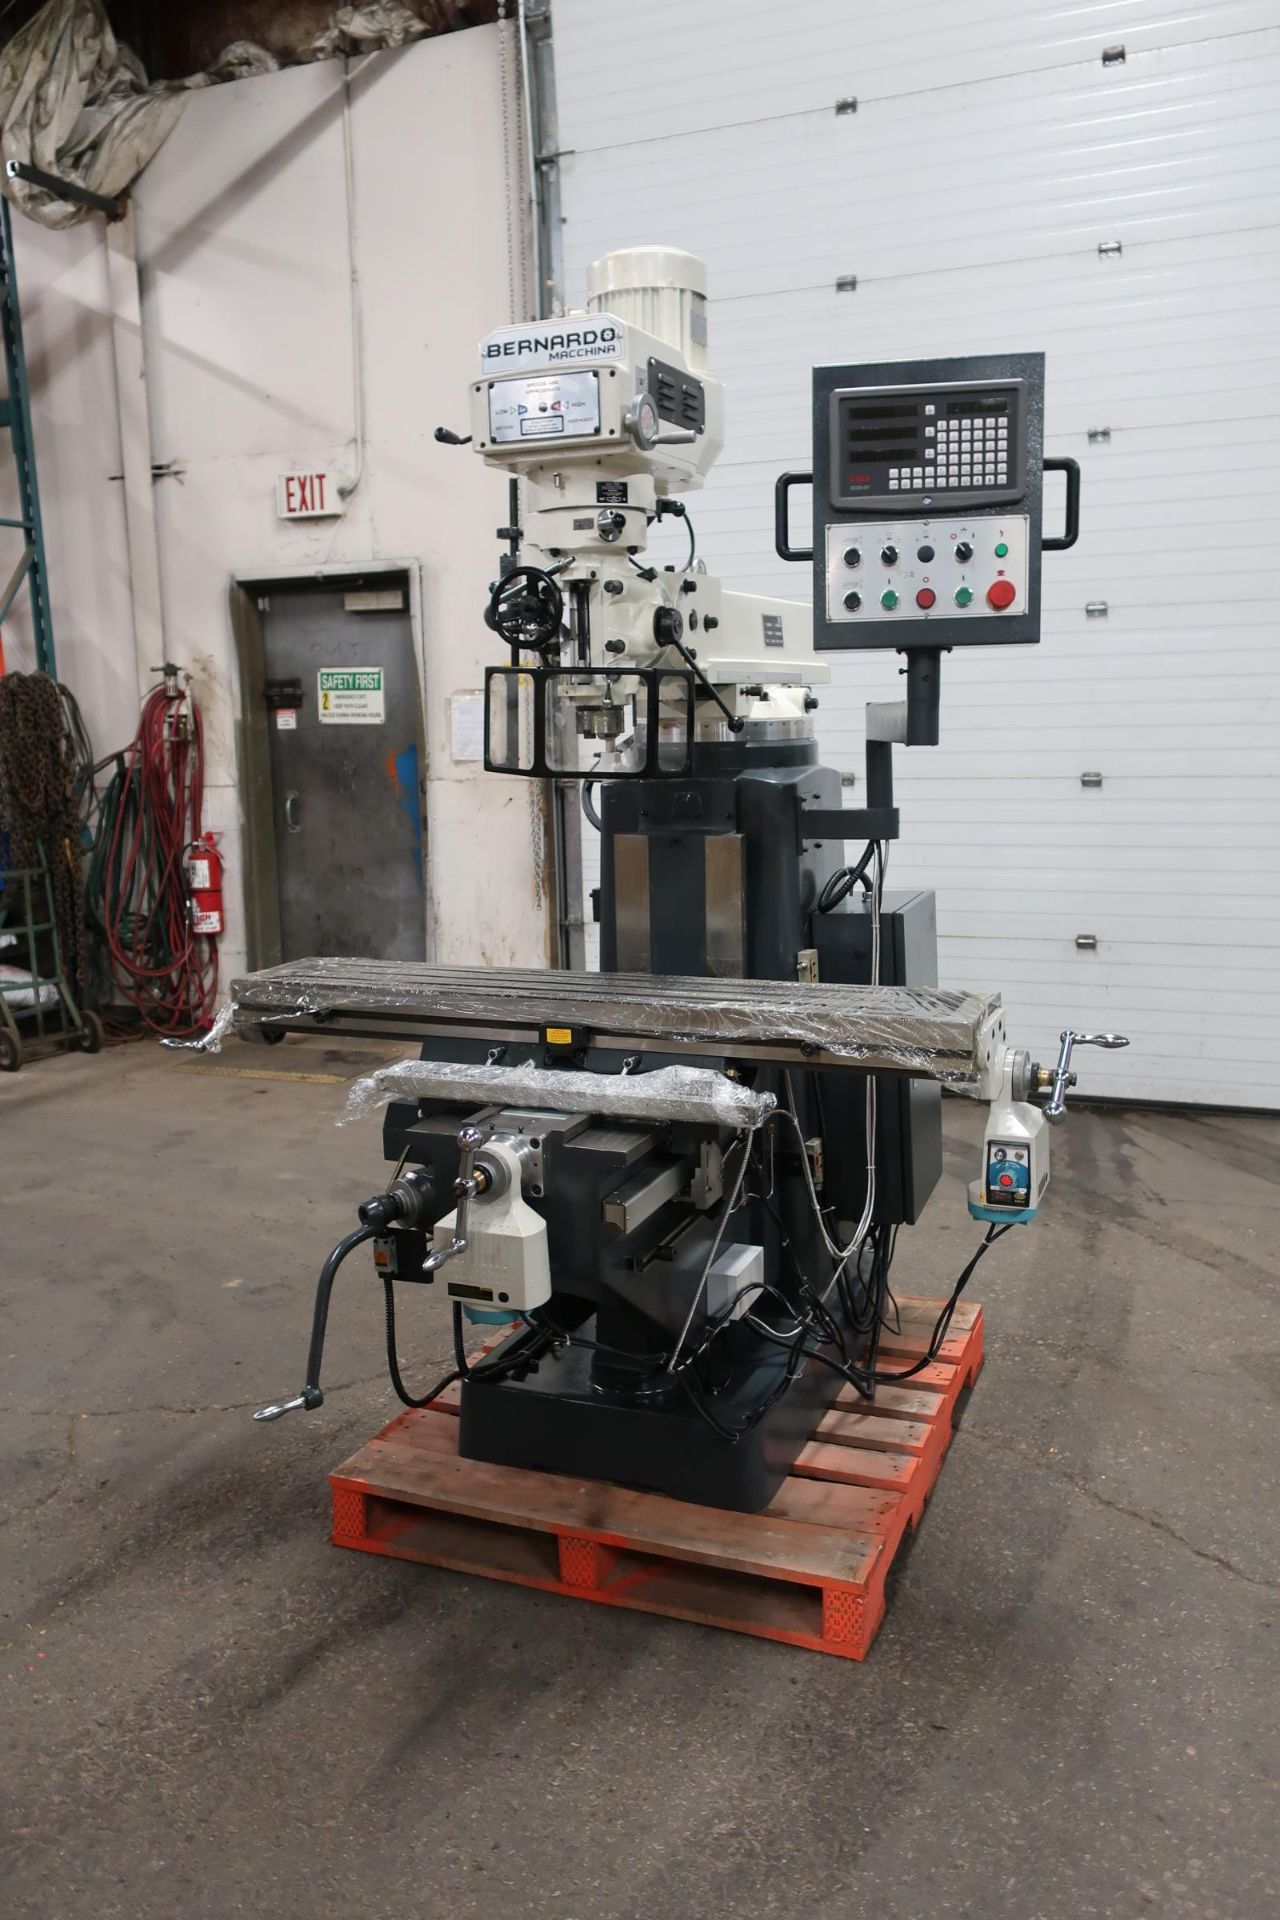 Bernardo MINT / UNUSED Milling Machine with Full Power Feed Table on ALL AXIS (X, Y and Z) with